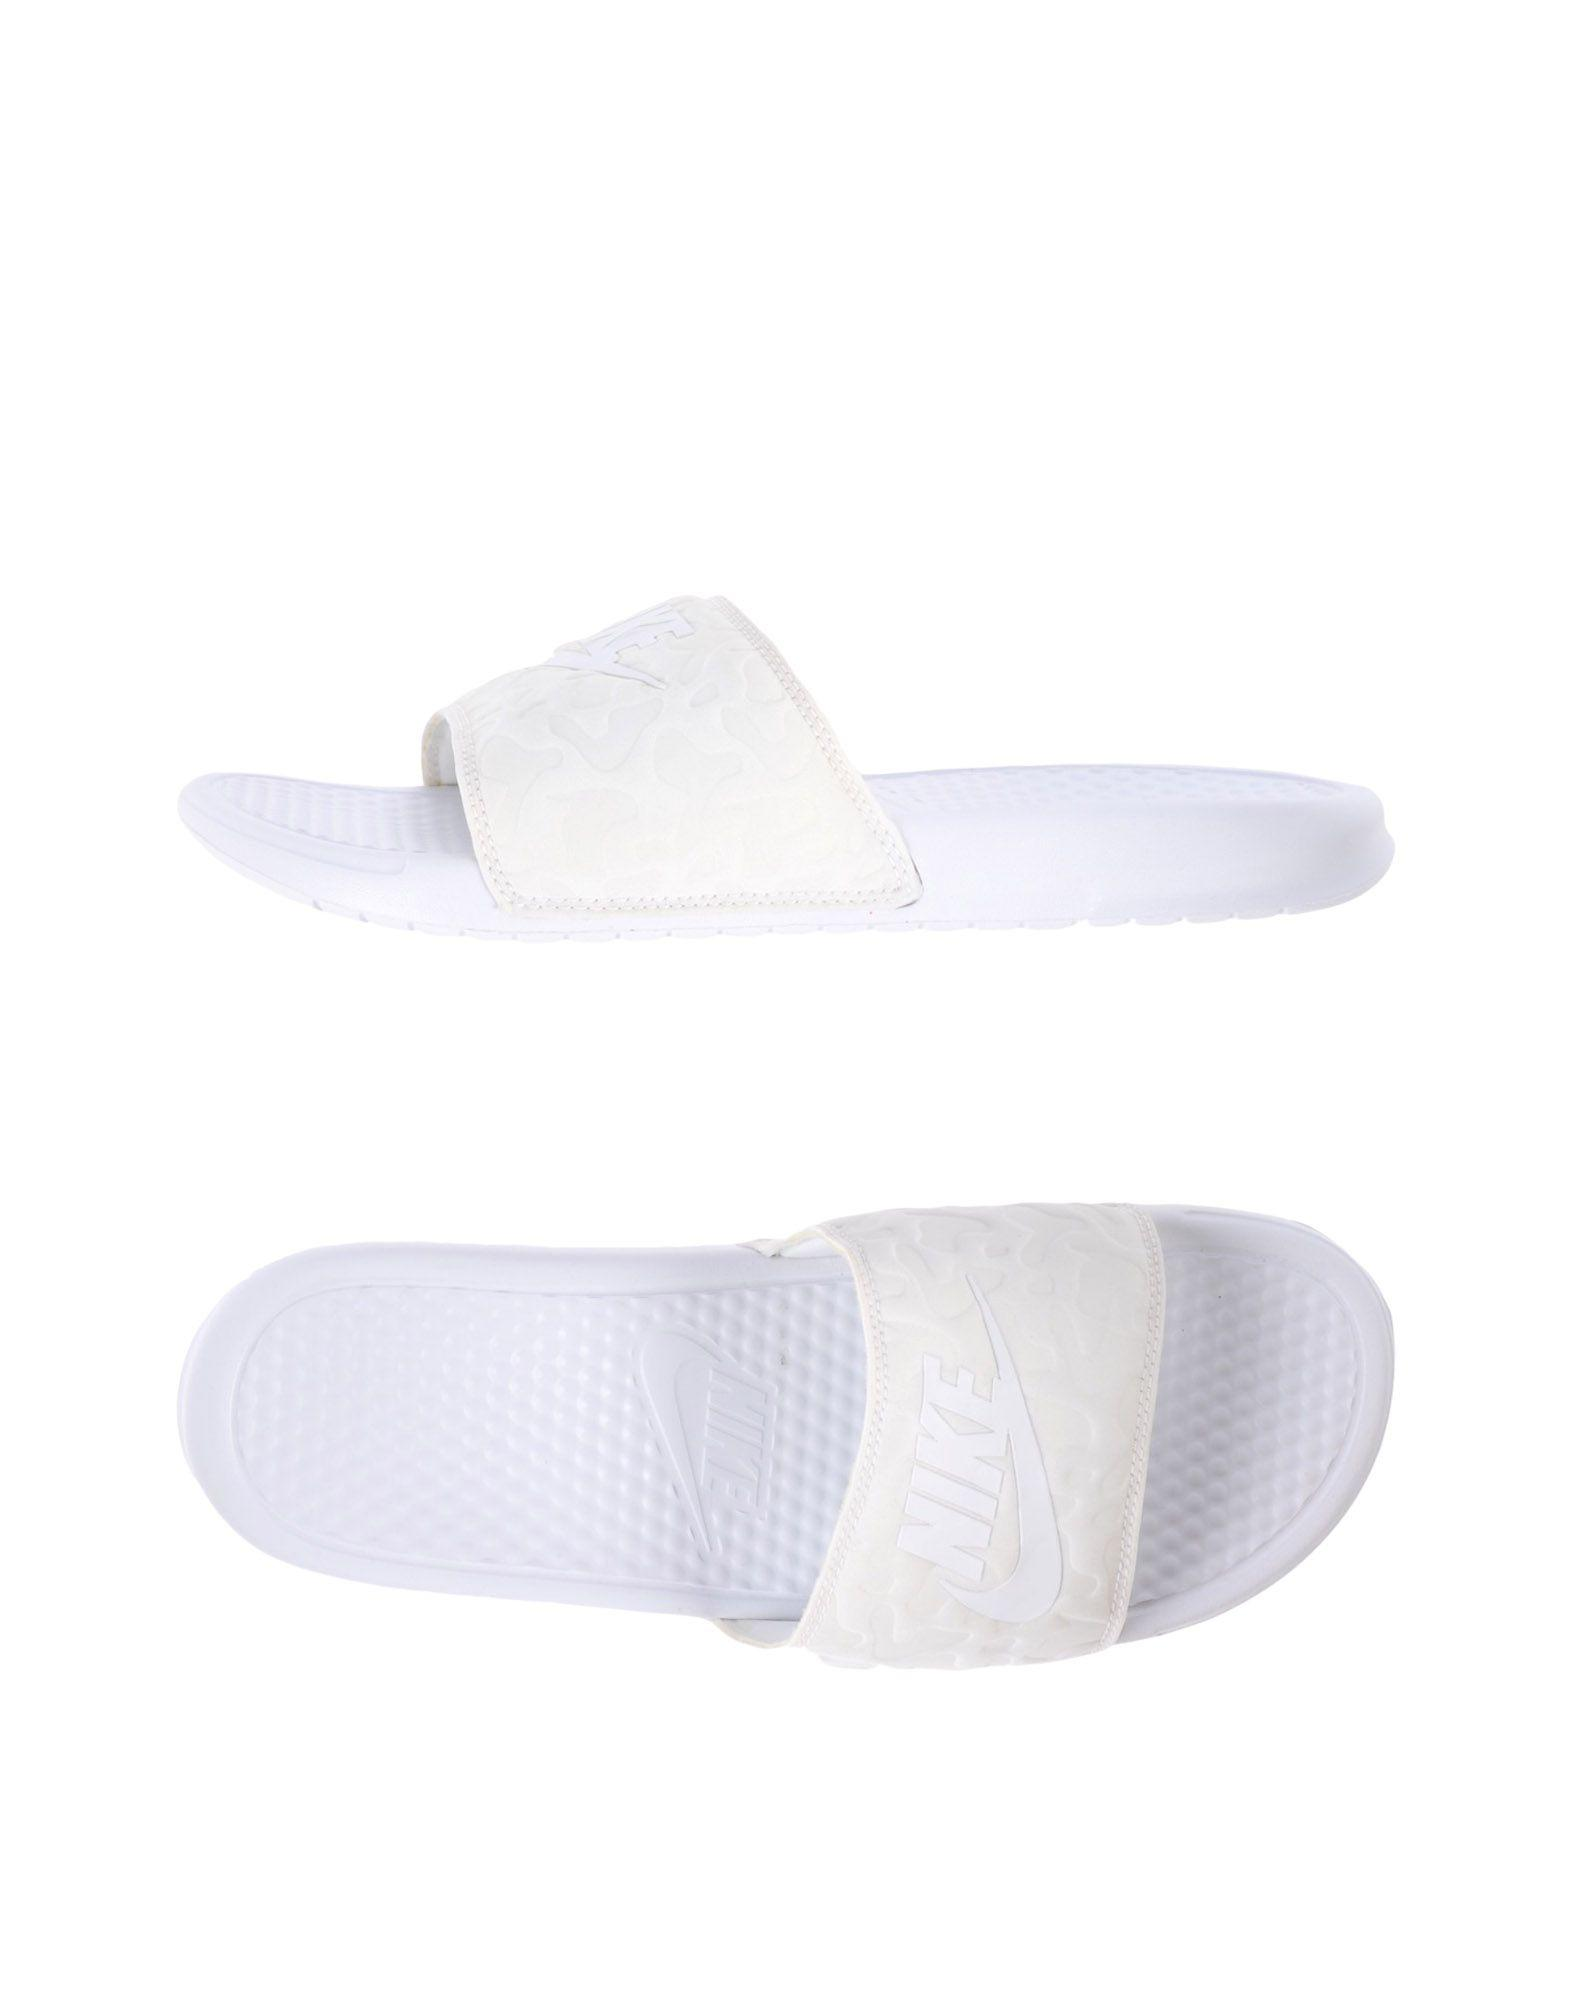 Nike Sandals In Ivory